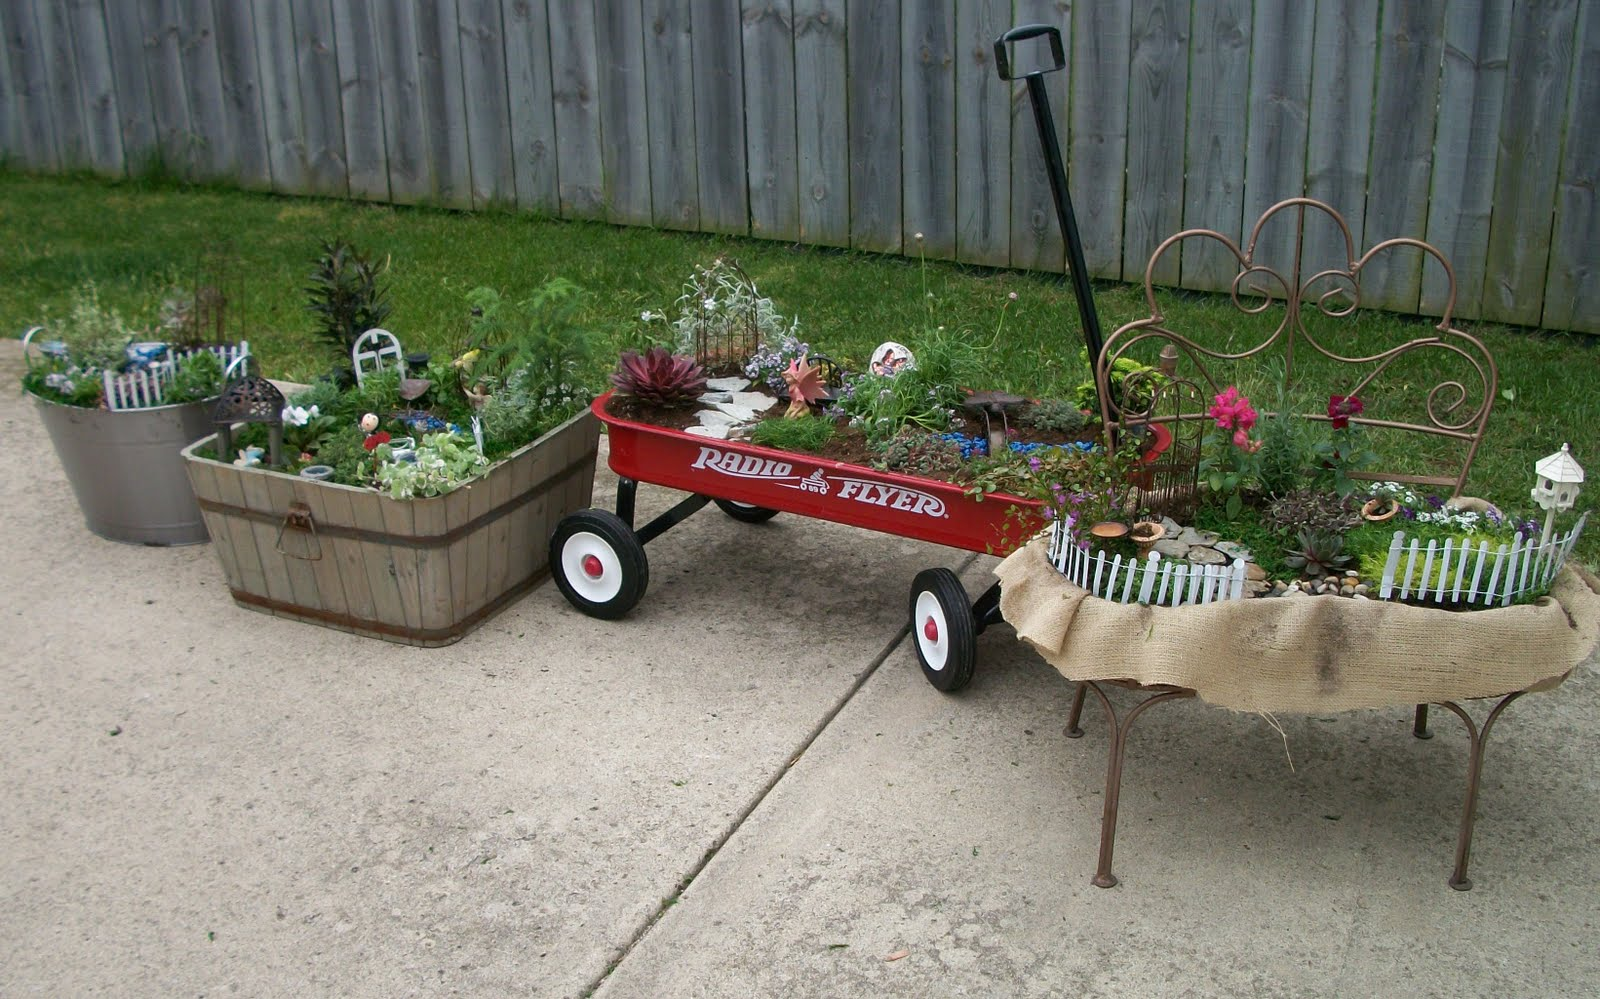 Sixty fifth avenue the fairy gardens - Fairy garden containers for sale ...